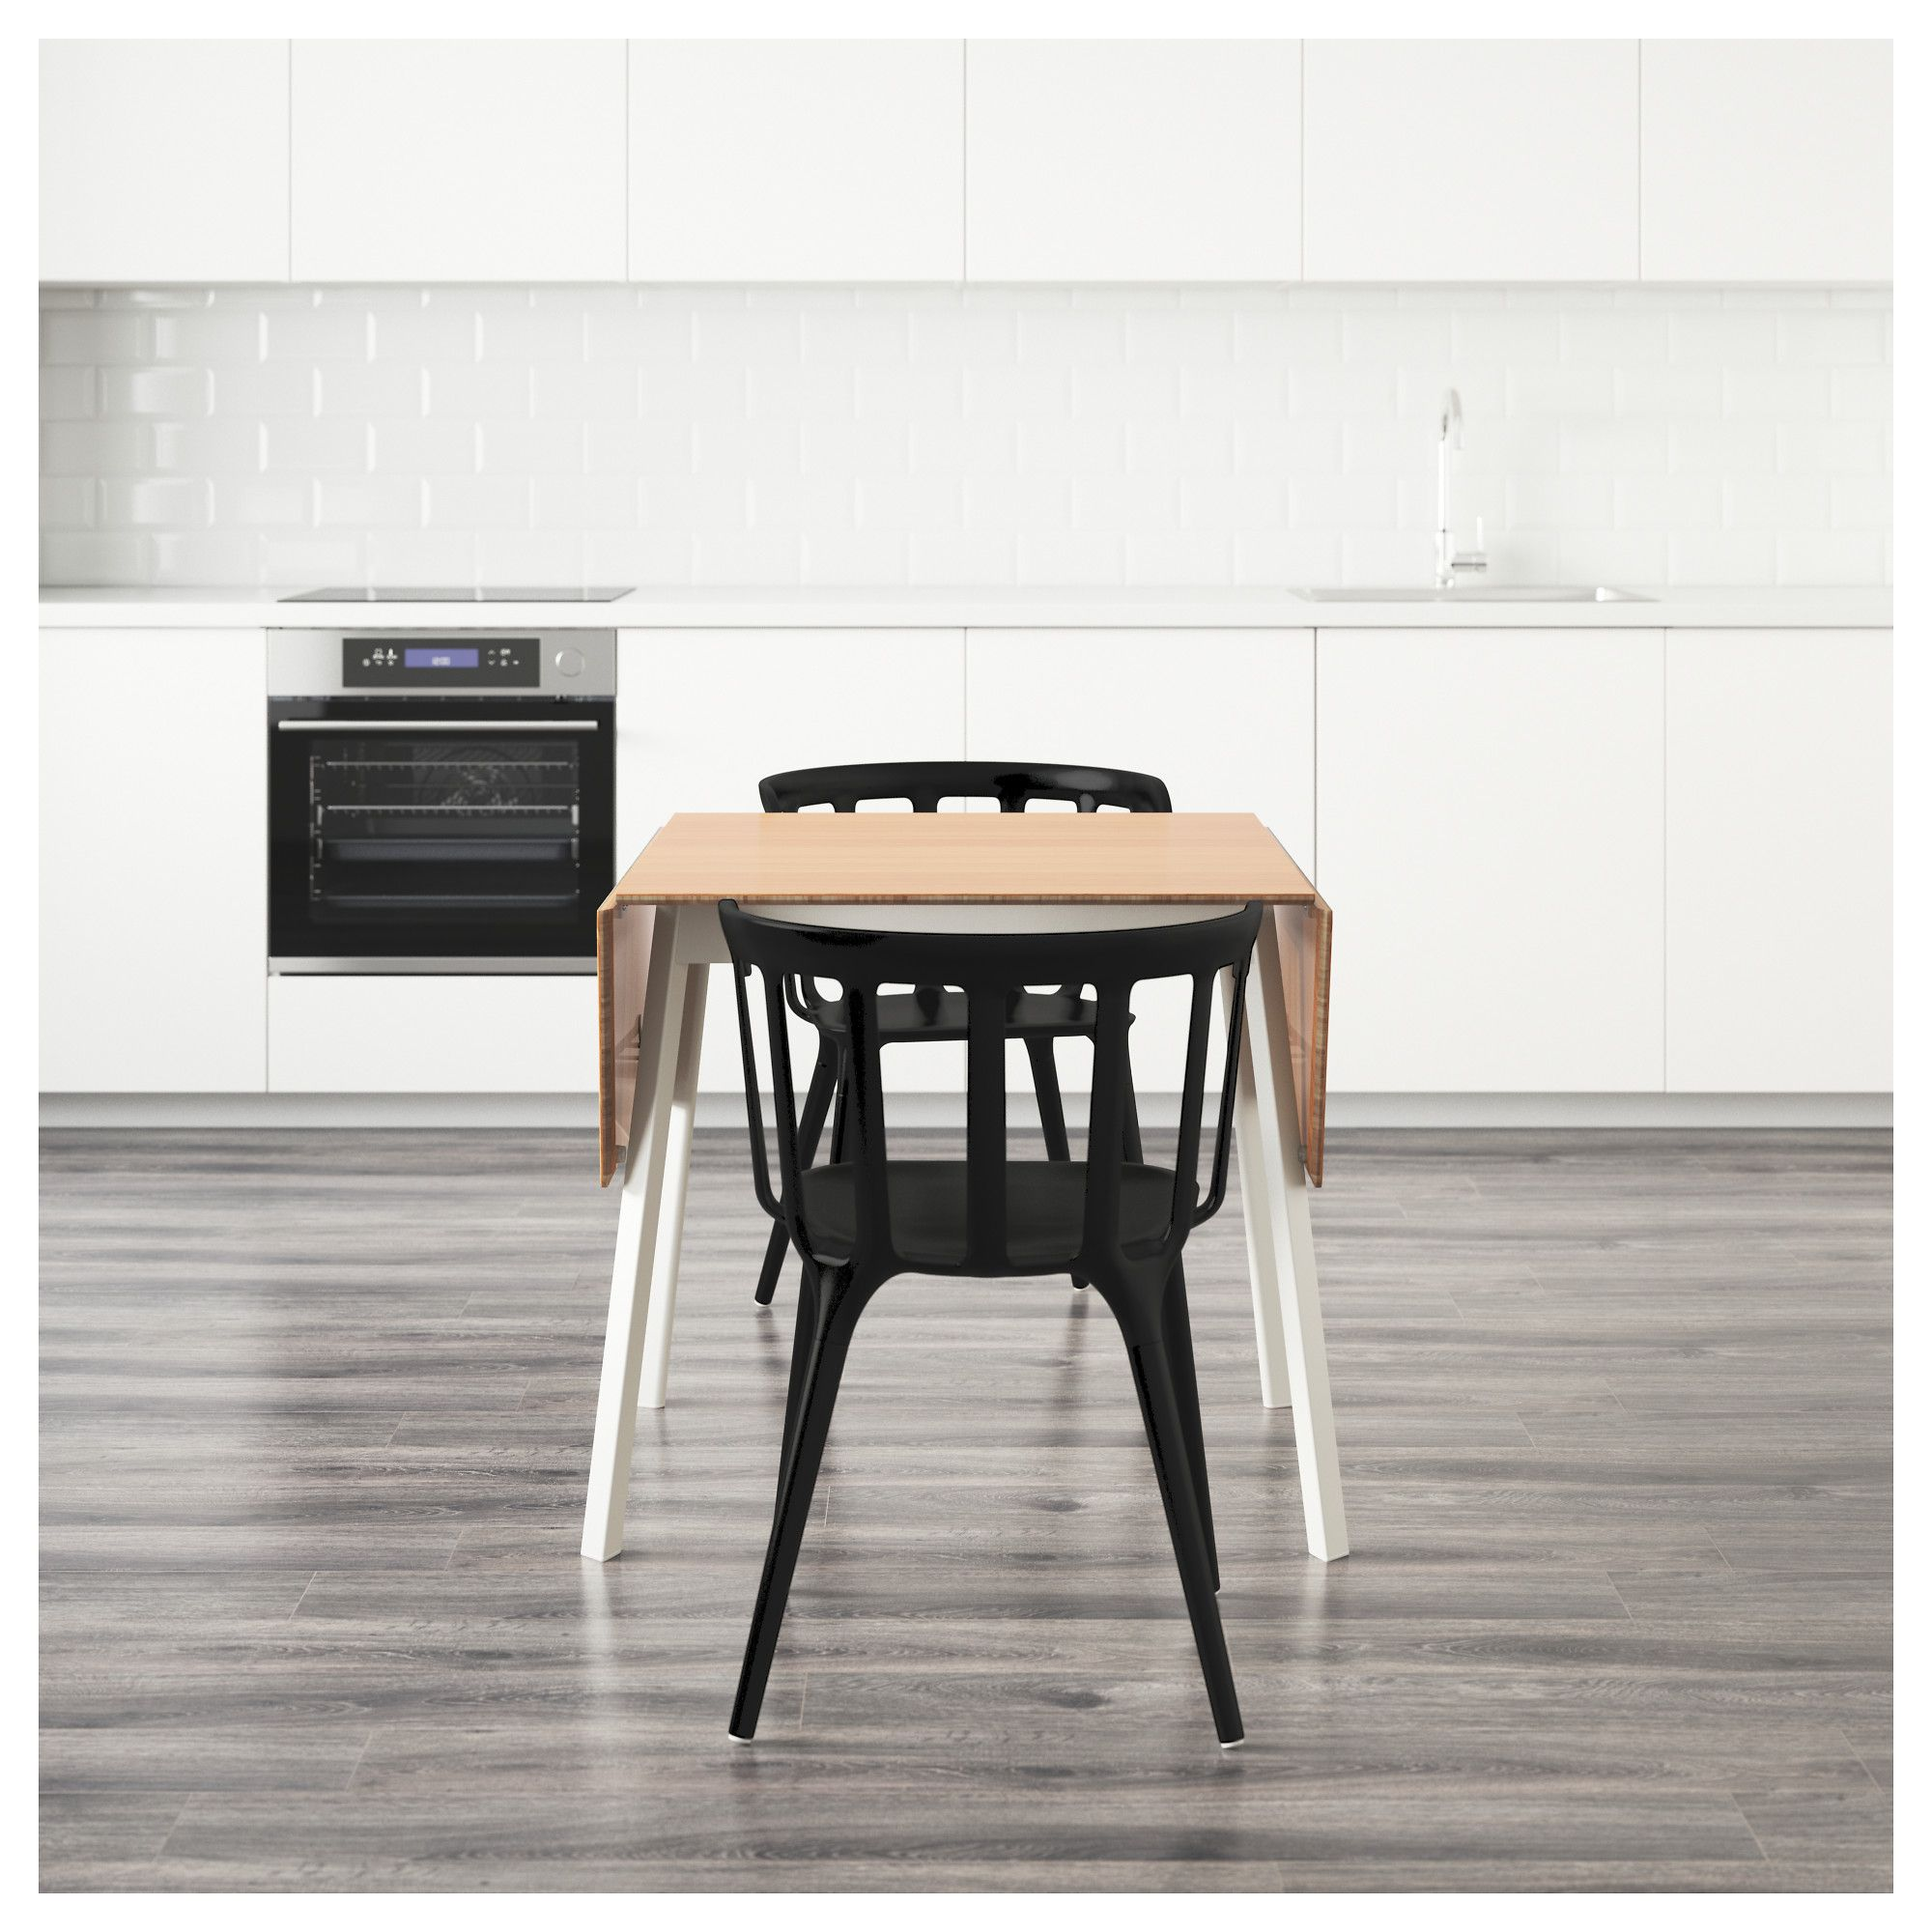 Ps 2012Ikea Ps 2012 Table And 2 Chairs Bambooblack 74 Cm  Ikea Pleasing Ikea Dining Room Chairs Sale Review